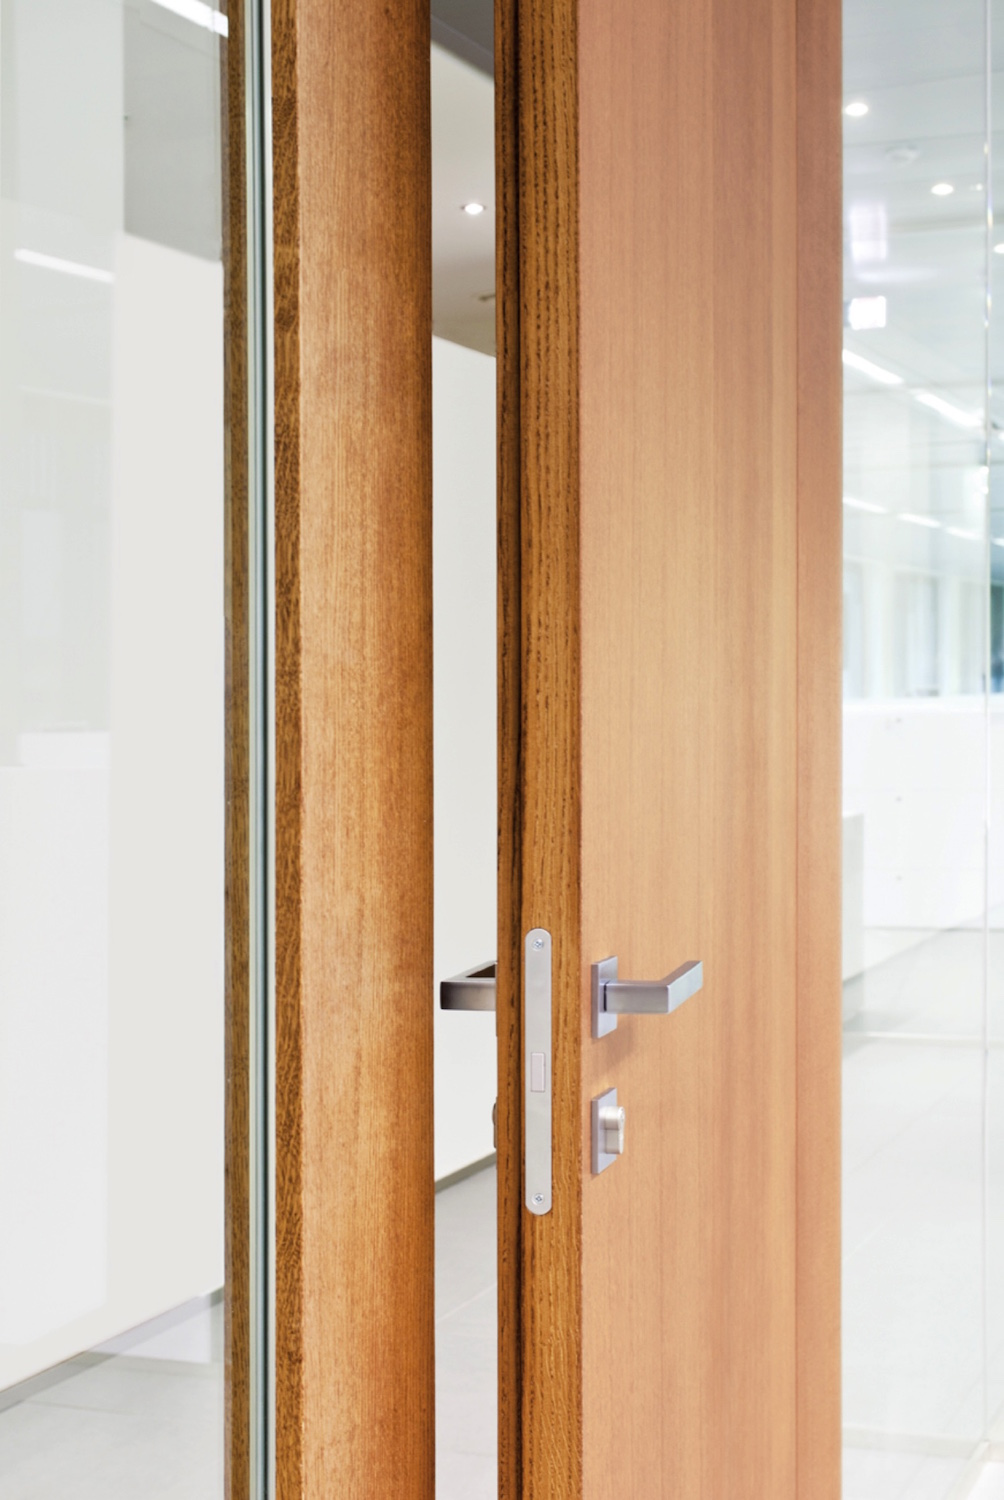 Olivari Designer Demountable Fitted Wall Partitions For